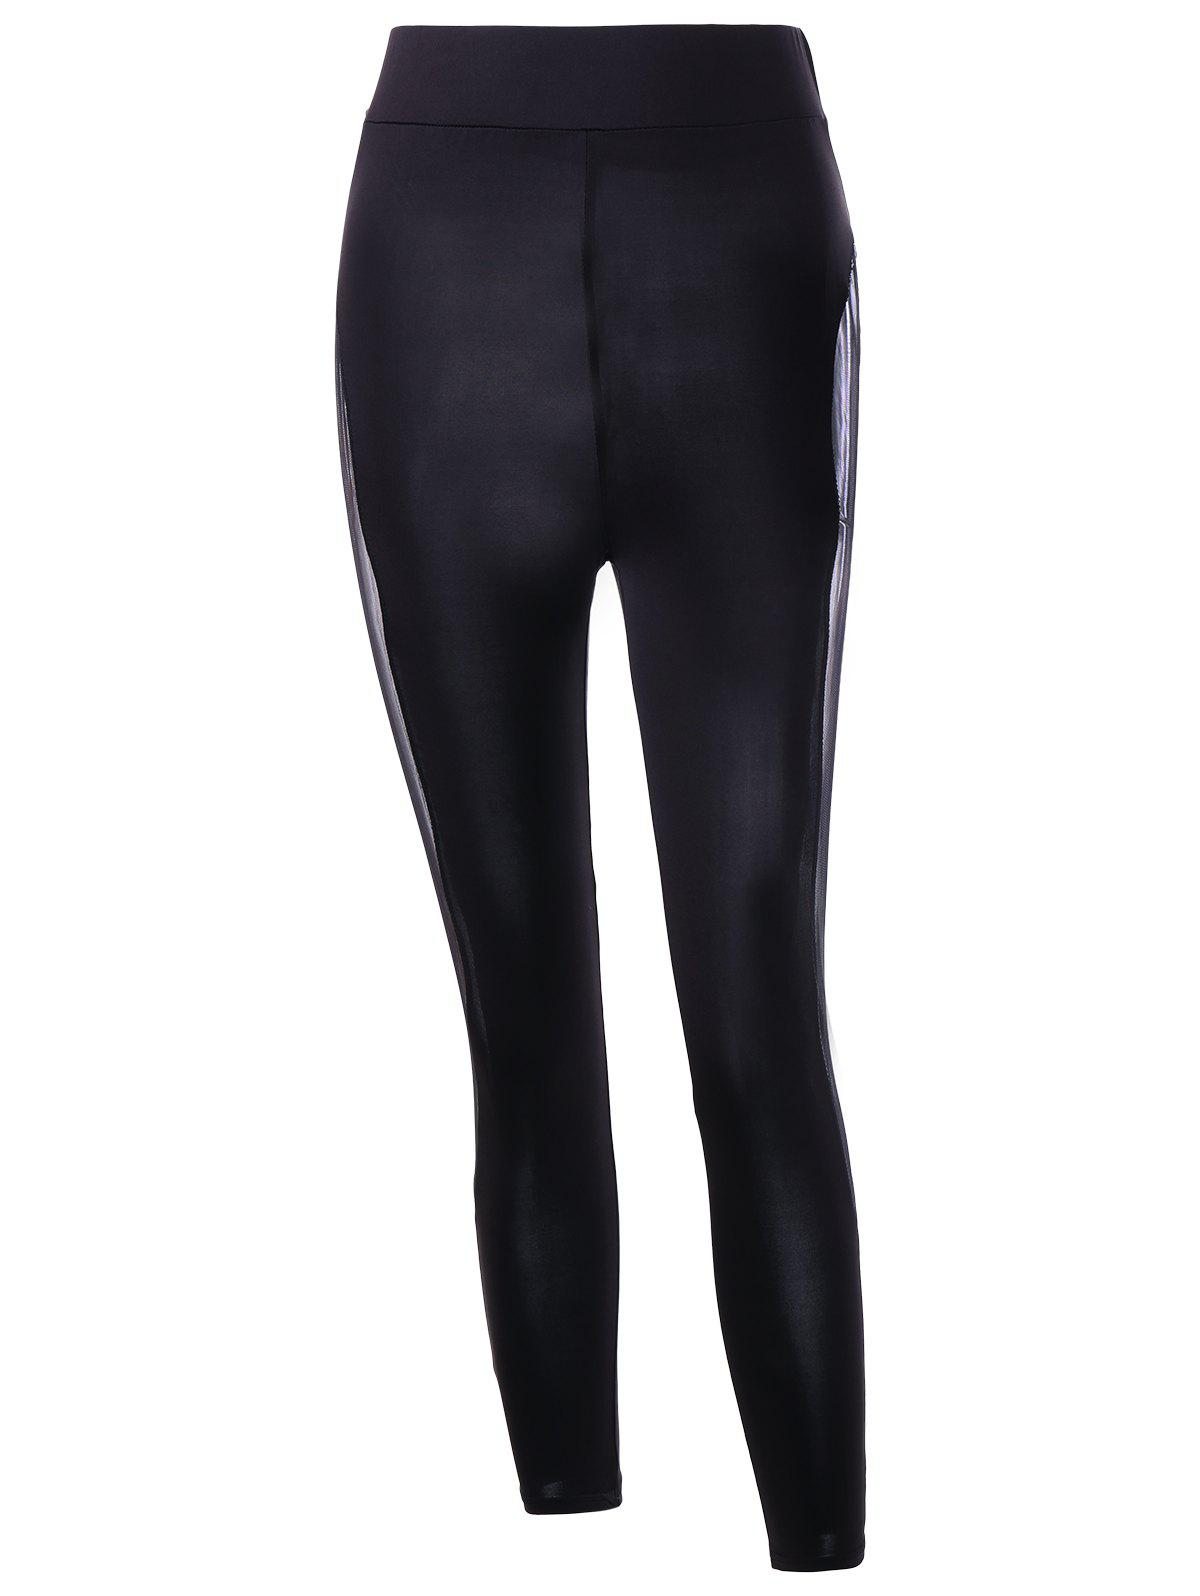 Legging à Empiècement en Tulle Transparent - Noir L